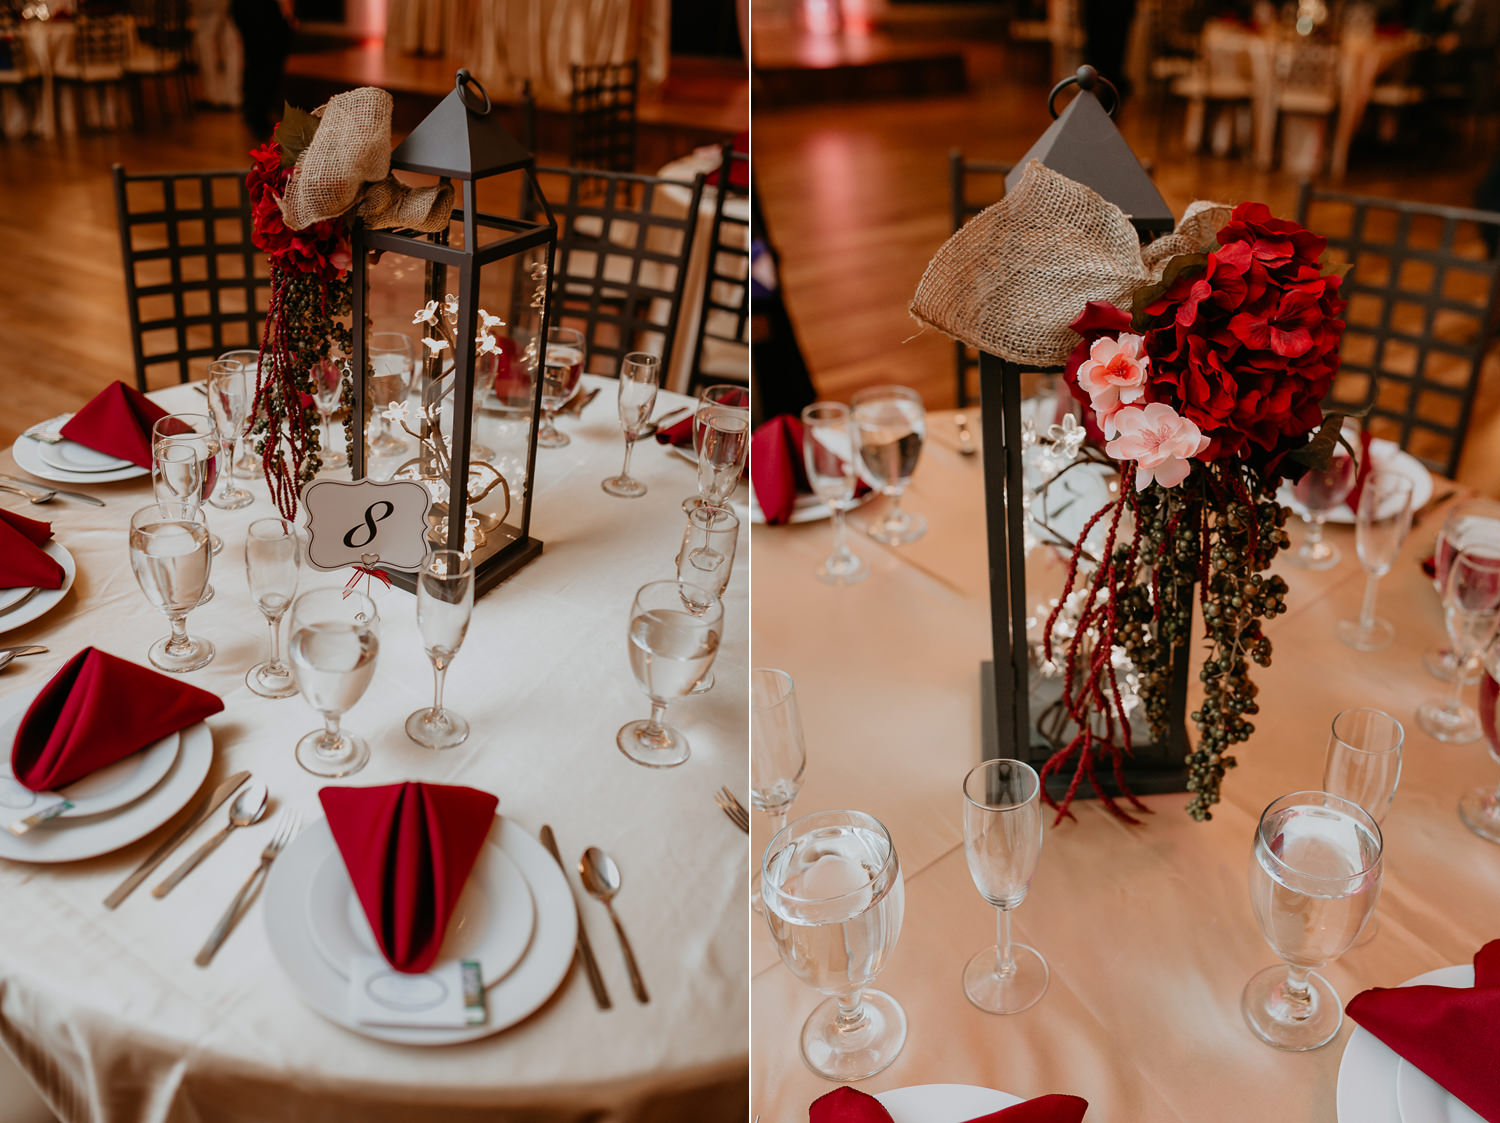 noahs event venue wedding table details with red napkins